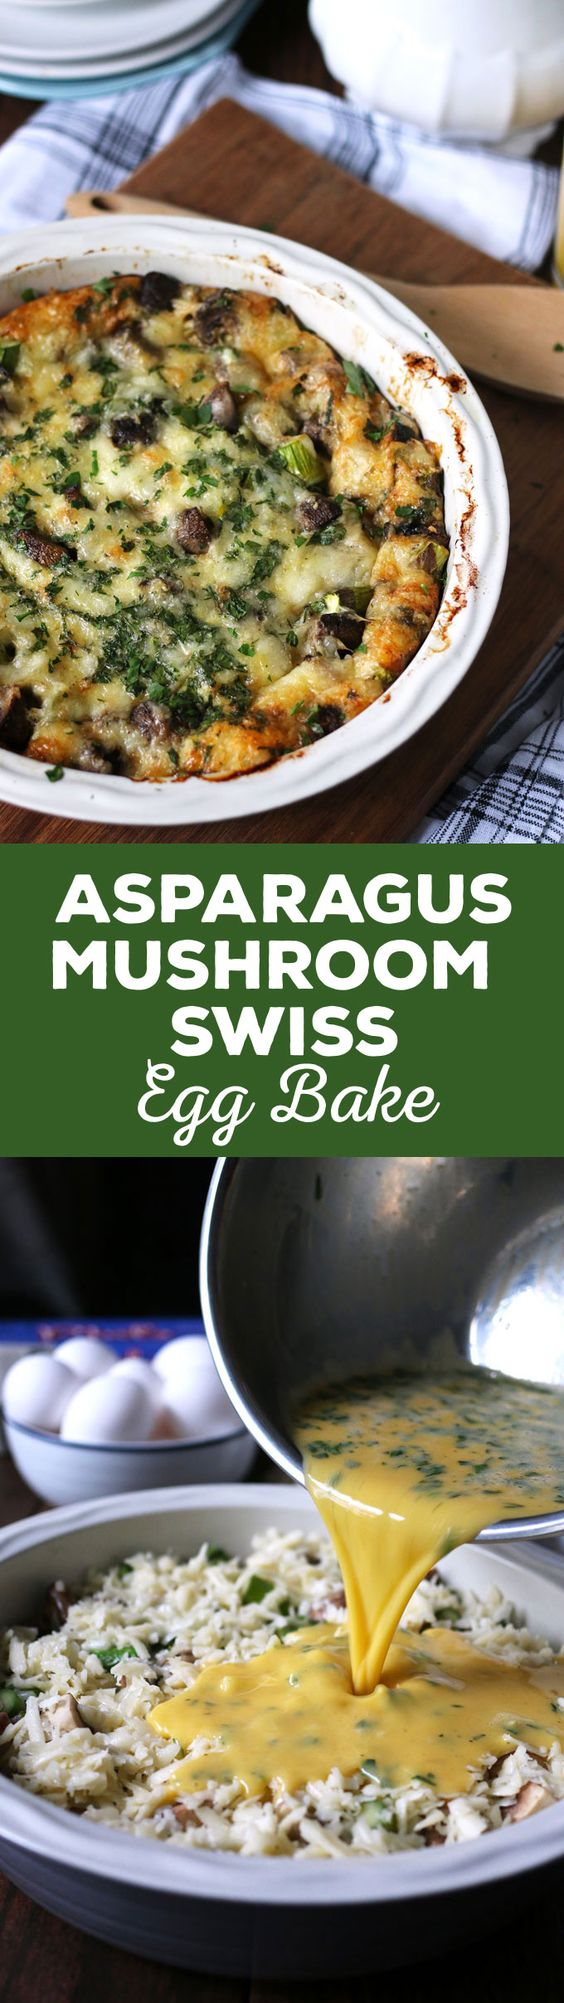 This asparagus mushroom swiss egg bake is perfect for brunch or ...